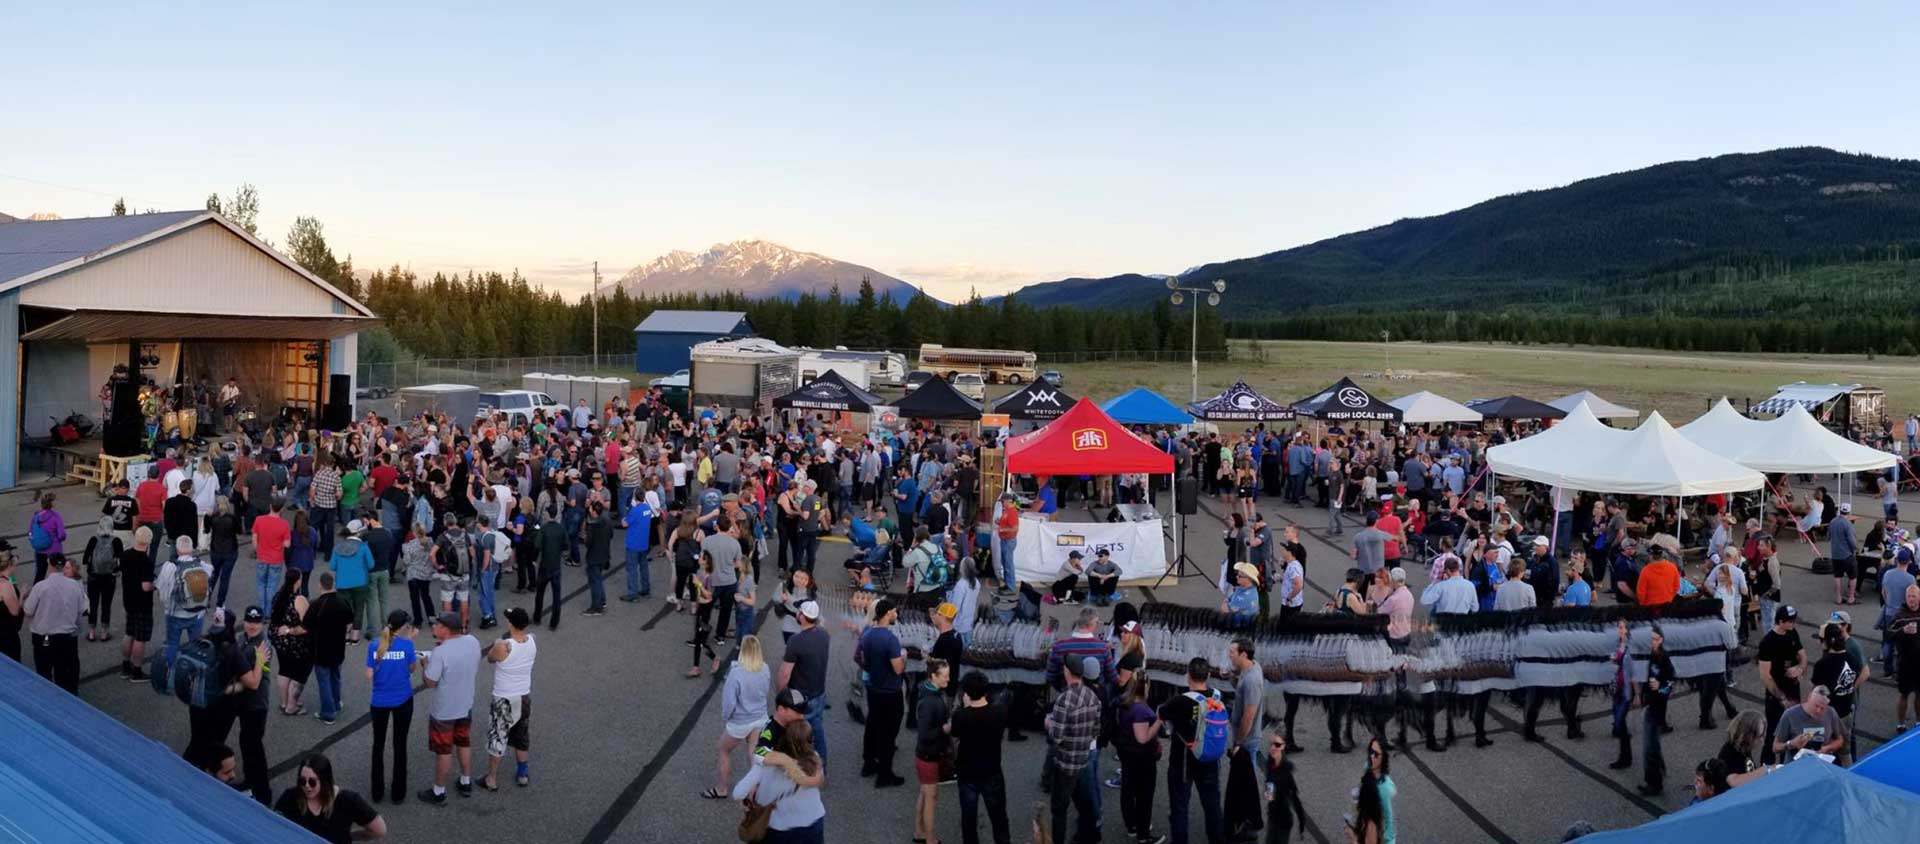 Valemount events